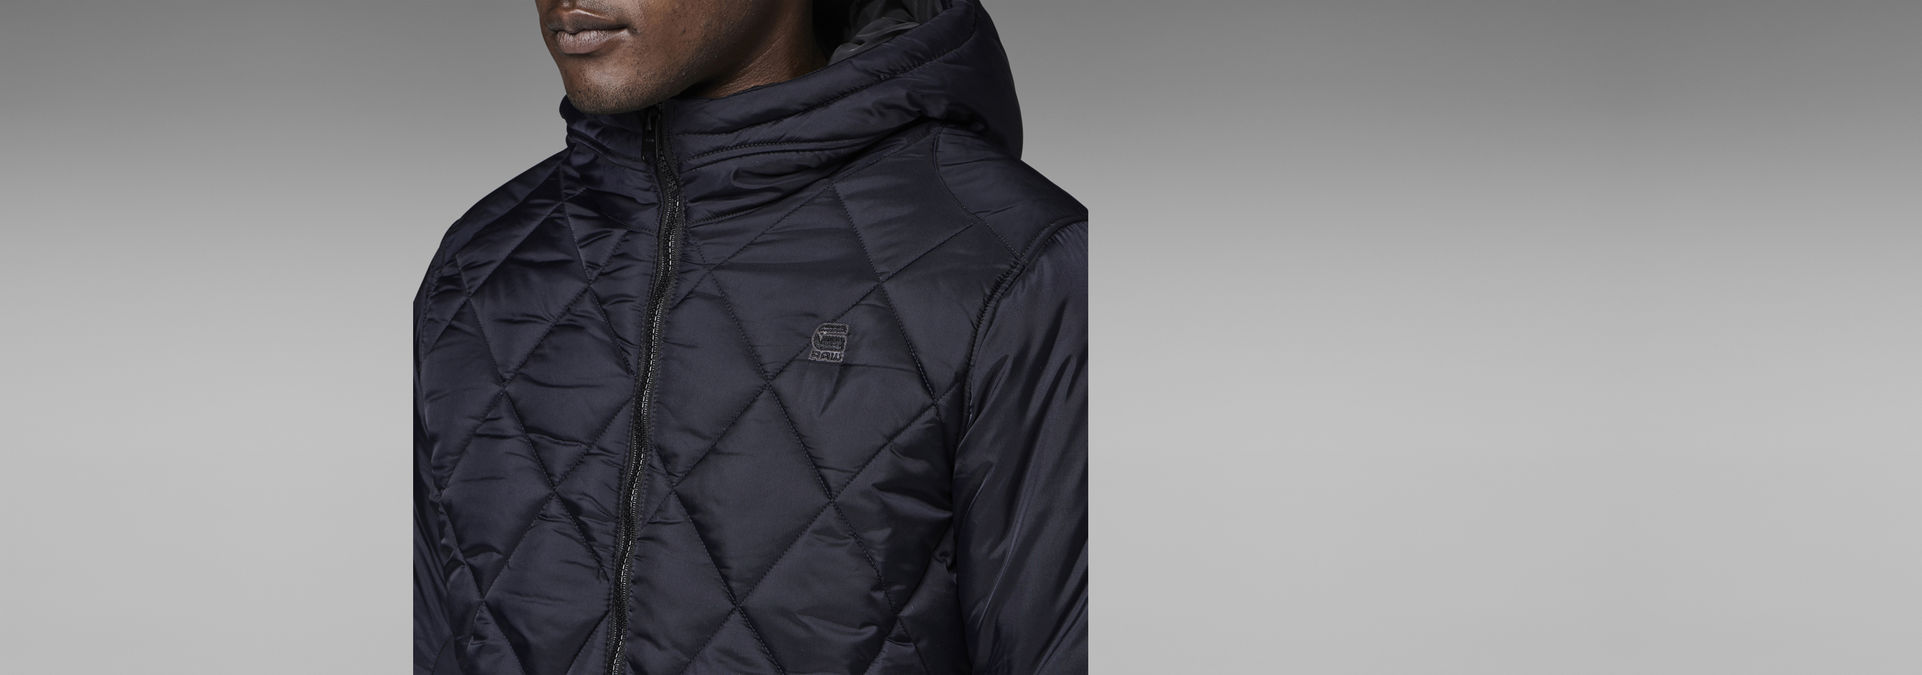 42bfccf3922 ... G-Star RAW® FIBRICK HOODED JACKET Dark blue flat front